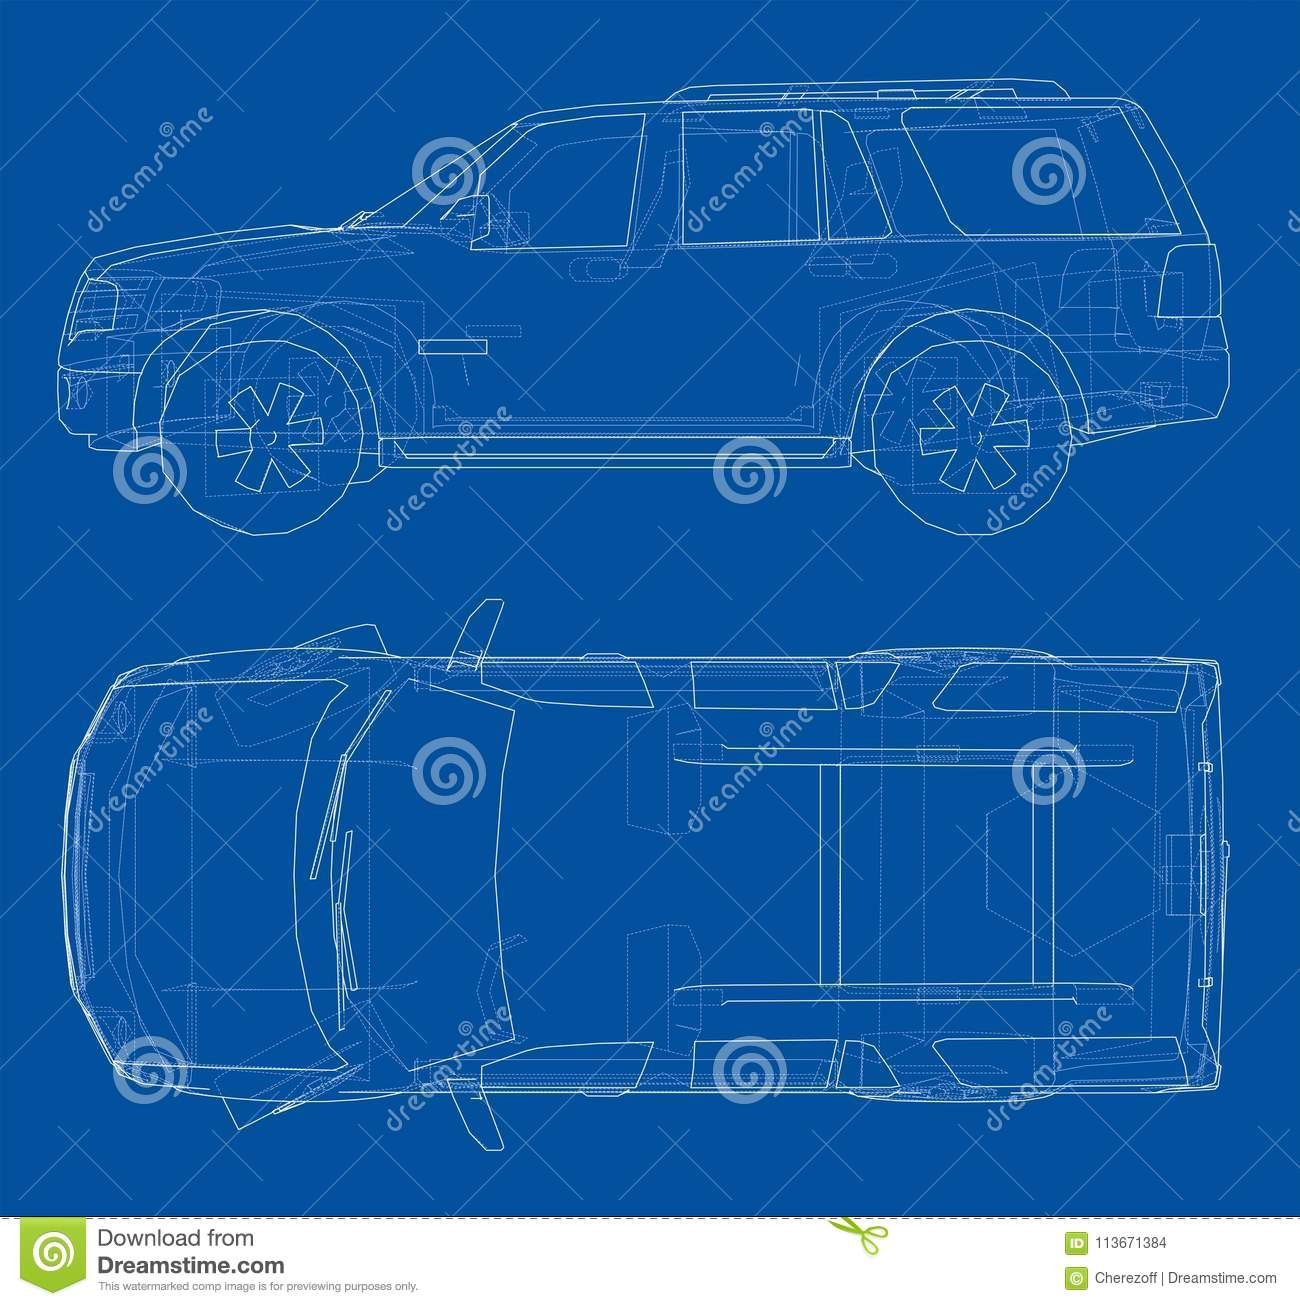 Car suv drawing outline stock illustration illustration of car suv drawing outline automotive simple royalty free illustration malvernweather Image collections